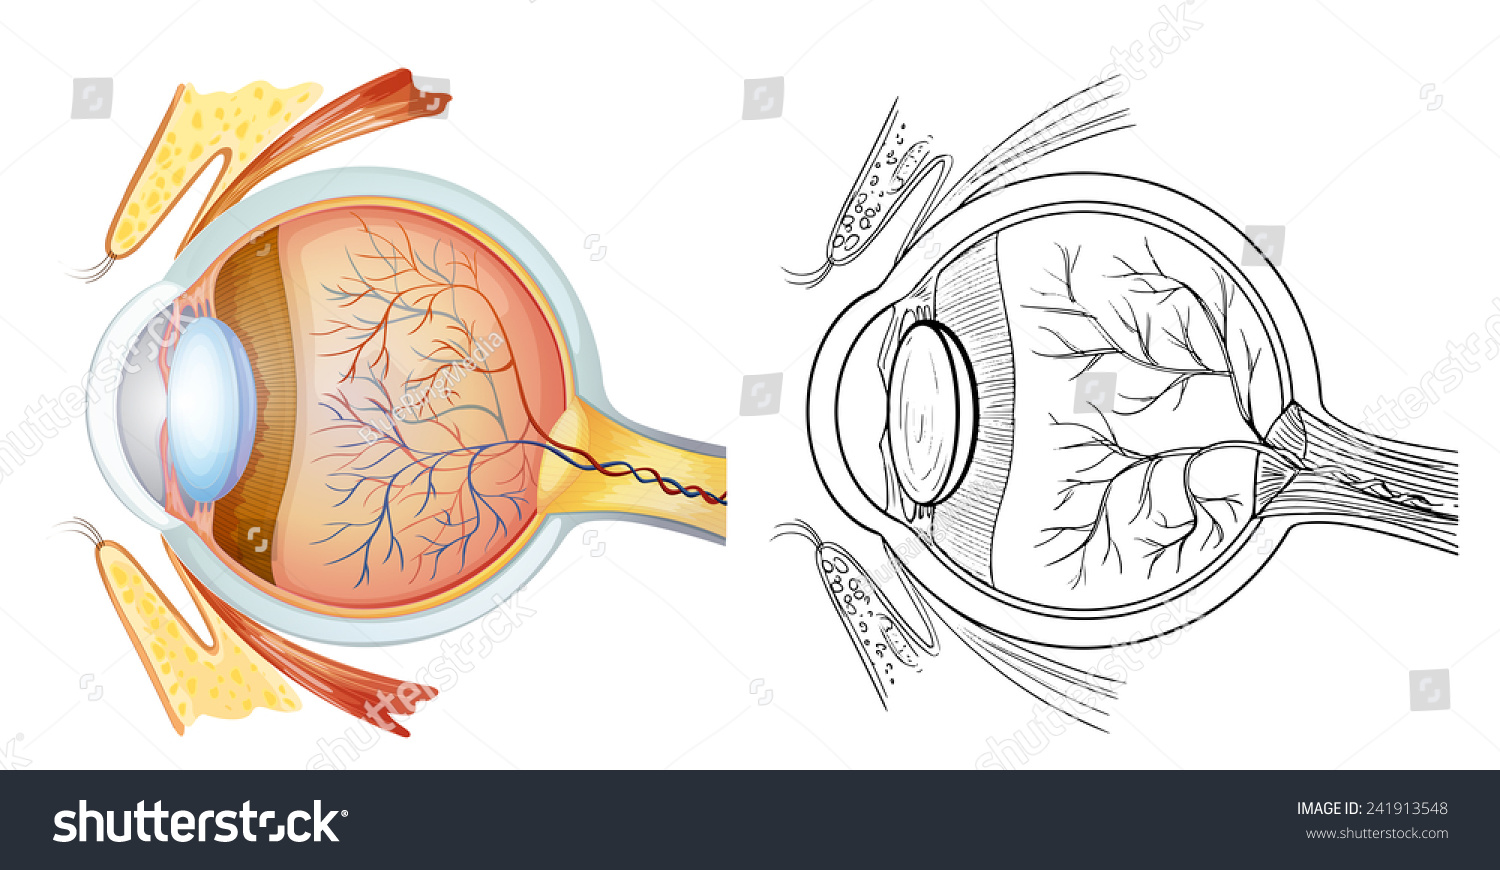 hight resolution of diagram of an eye anatomy